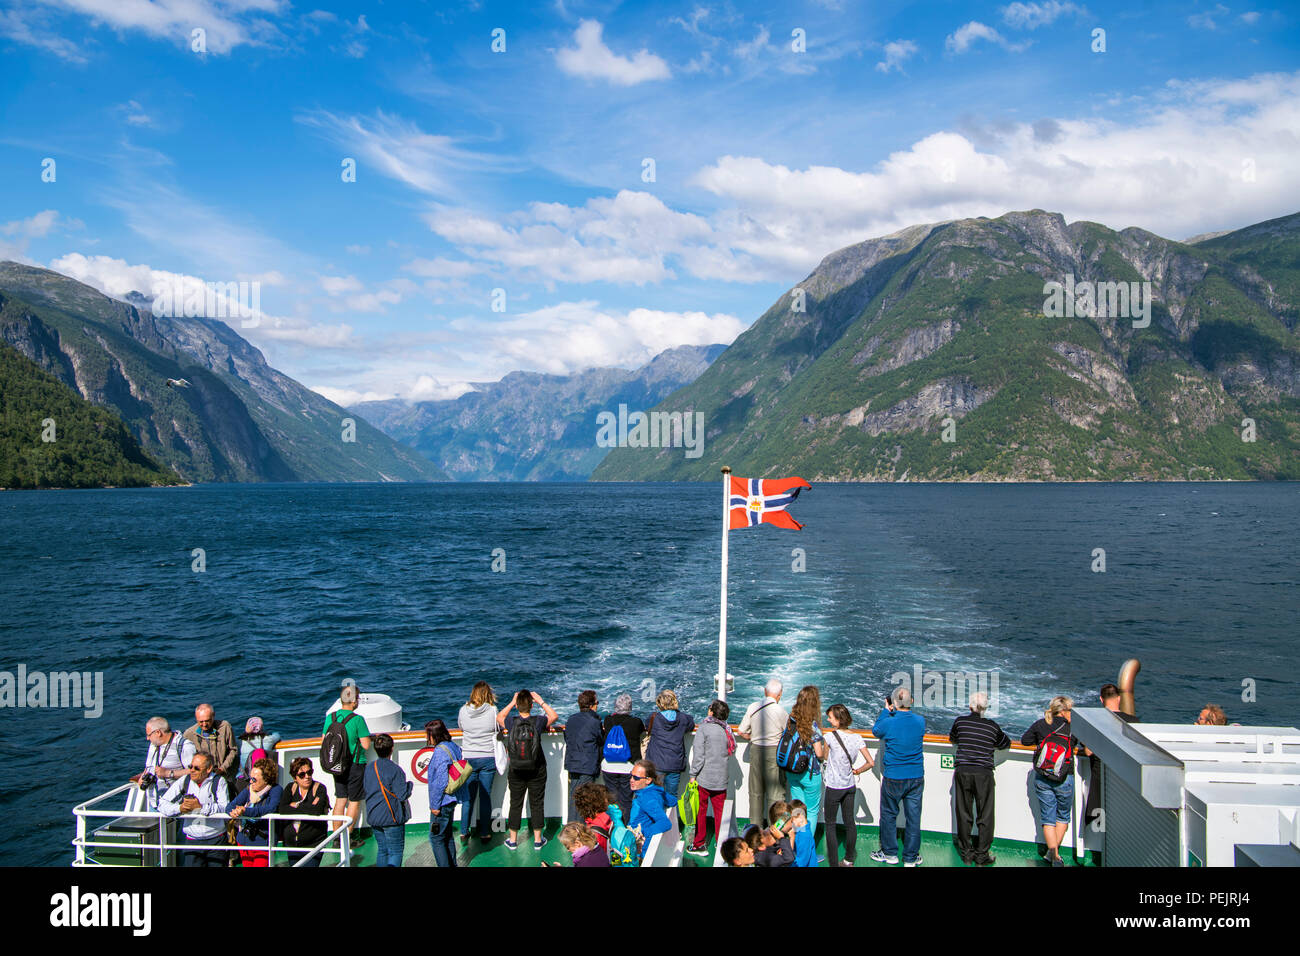 Geiranger, Norway. Tourists on the deck of the Geiranger to Hellesylt ferry, Geirangerfjord, Norway - Stock Image